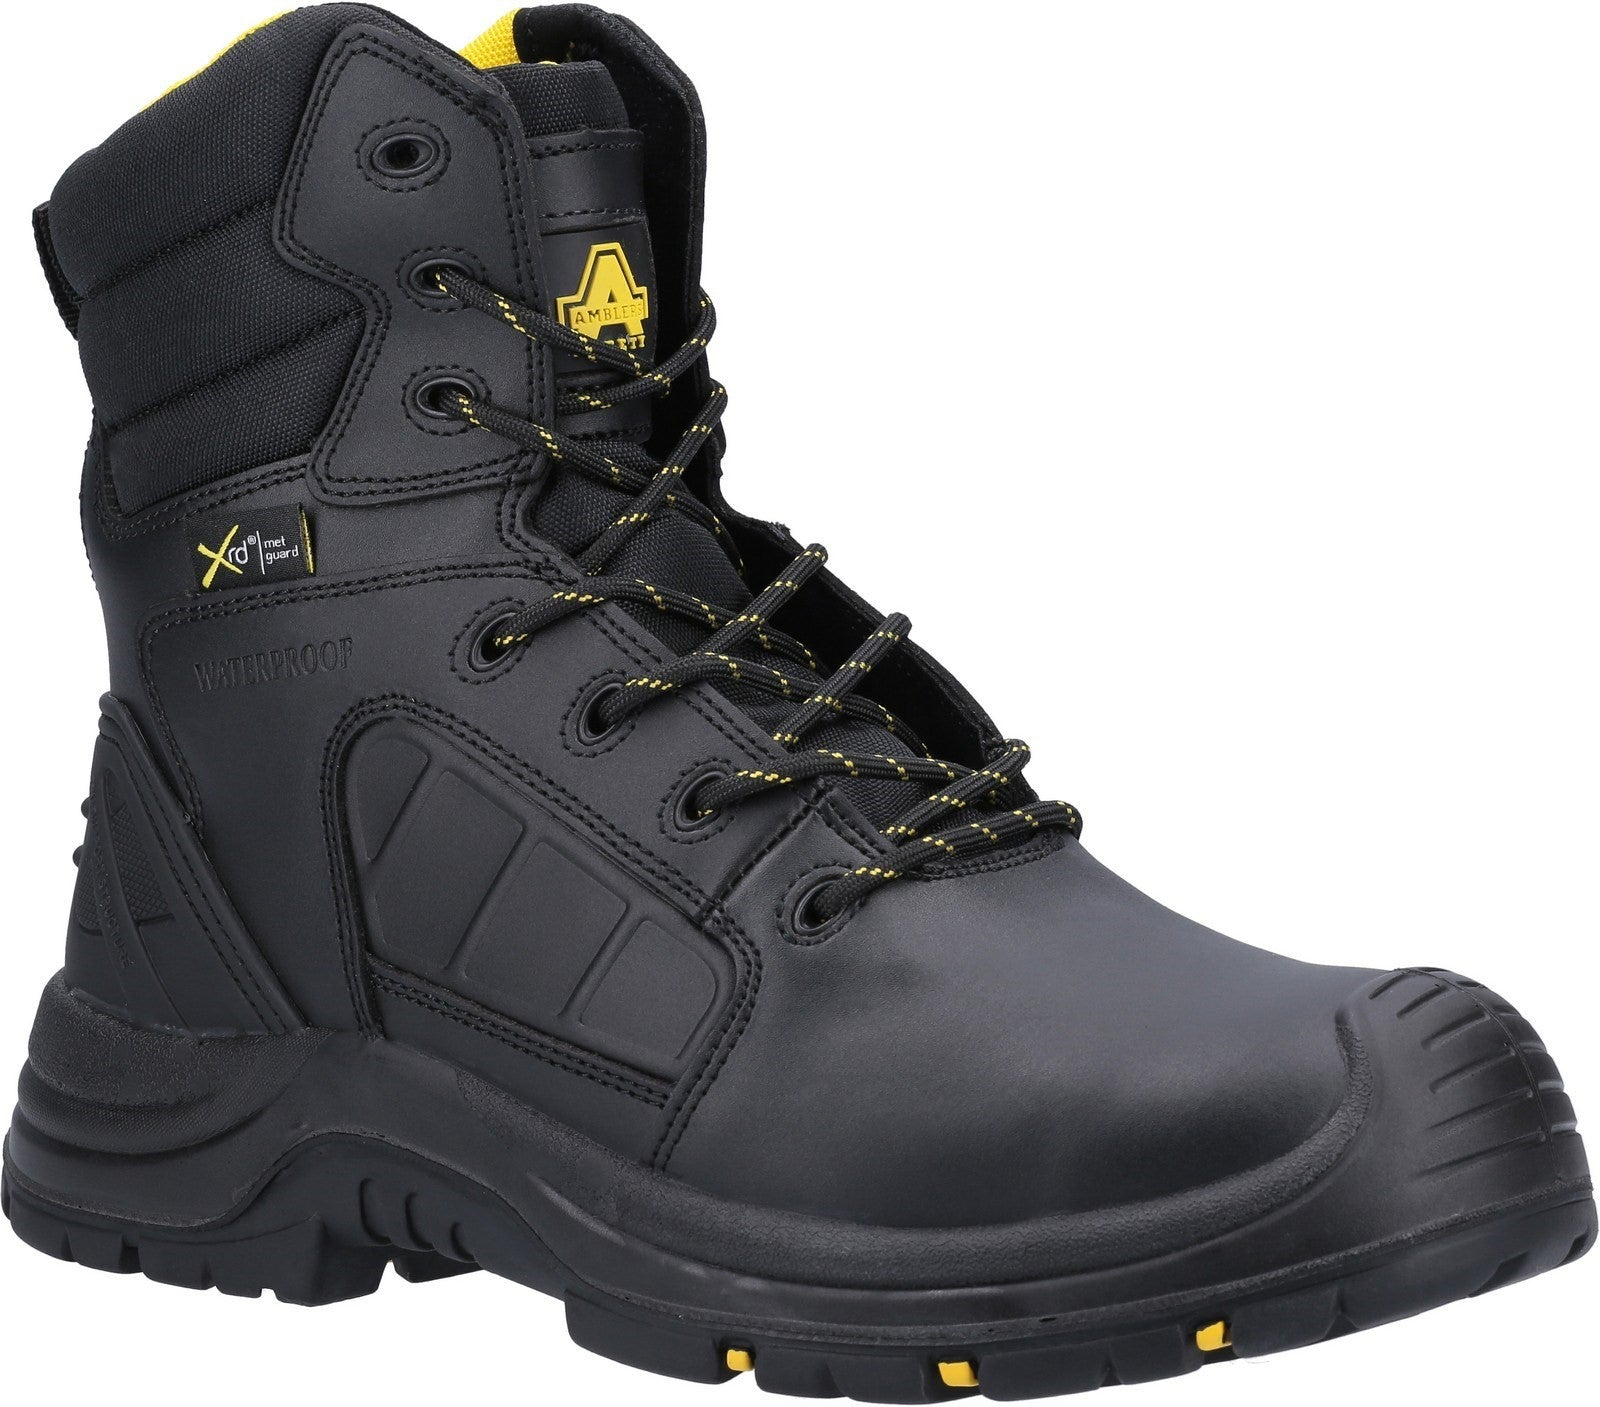 AS350C Berwyn Hi-Leg Waterproof Metal Free Metatarsal Safety Boot